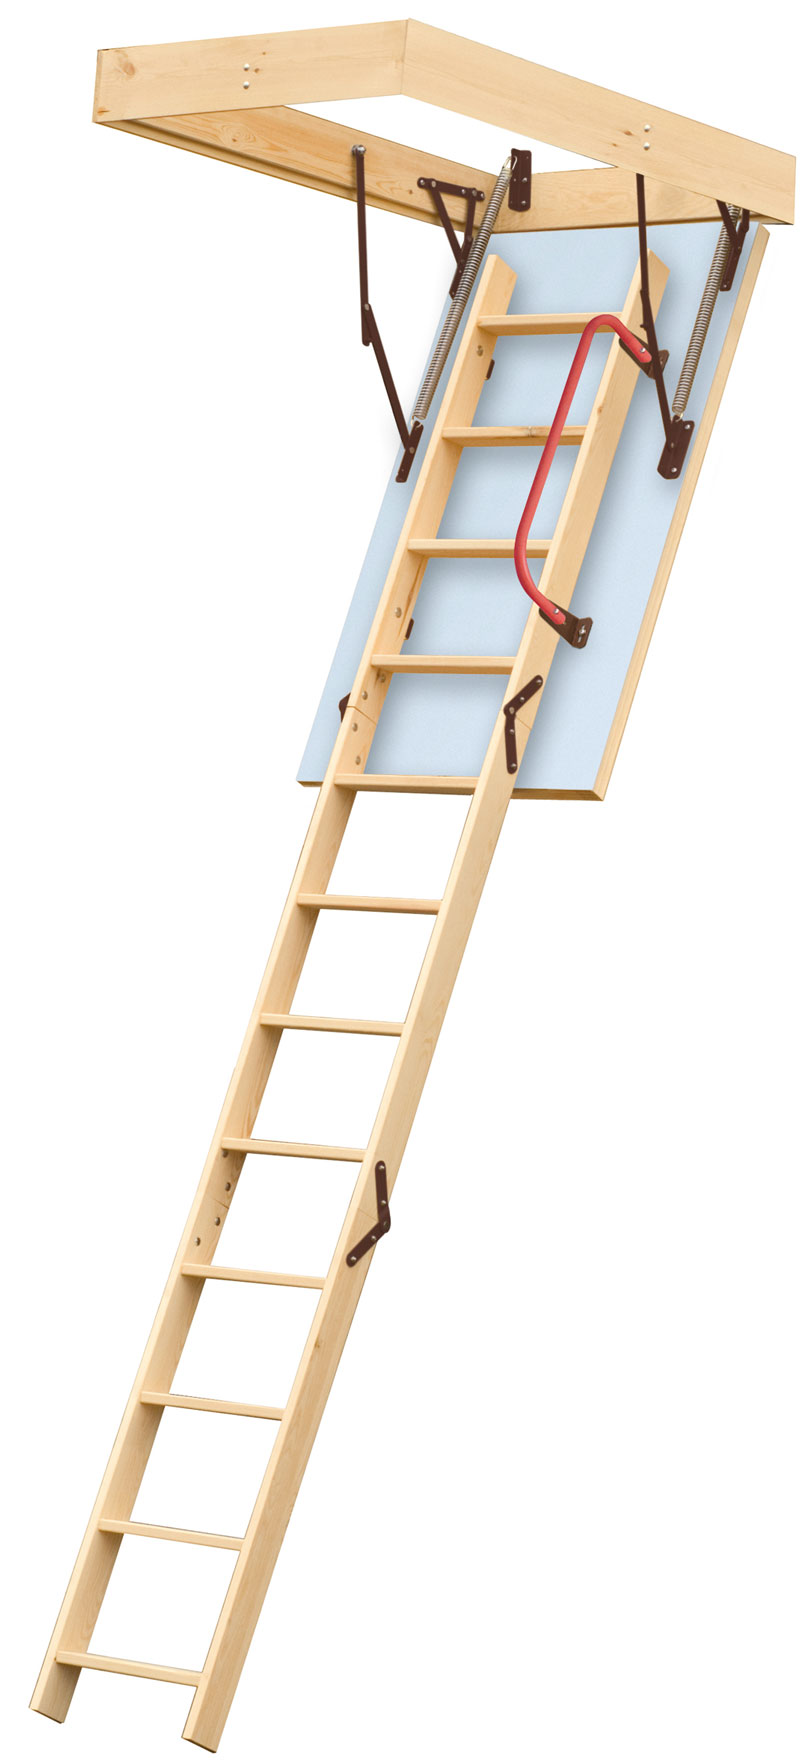 Lyte Timber Loft Ladder Hulley Ladders